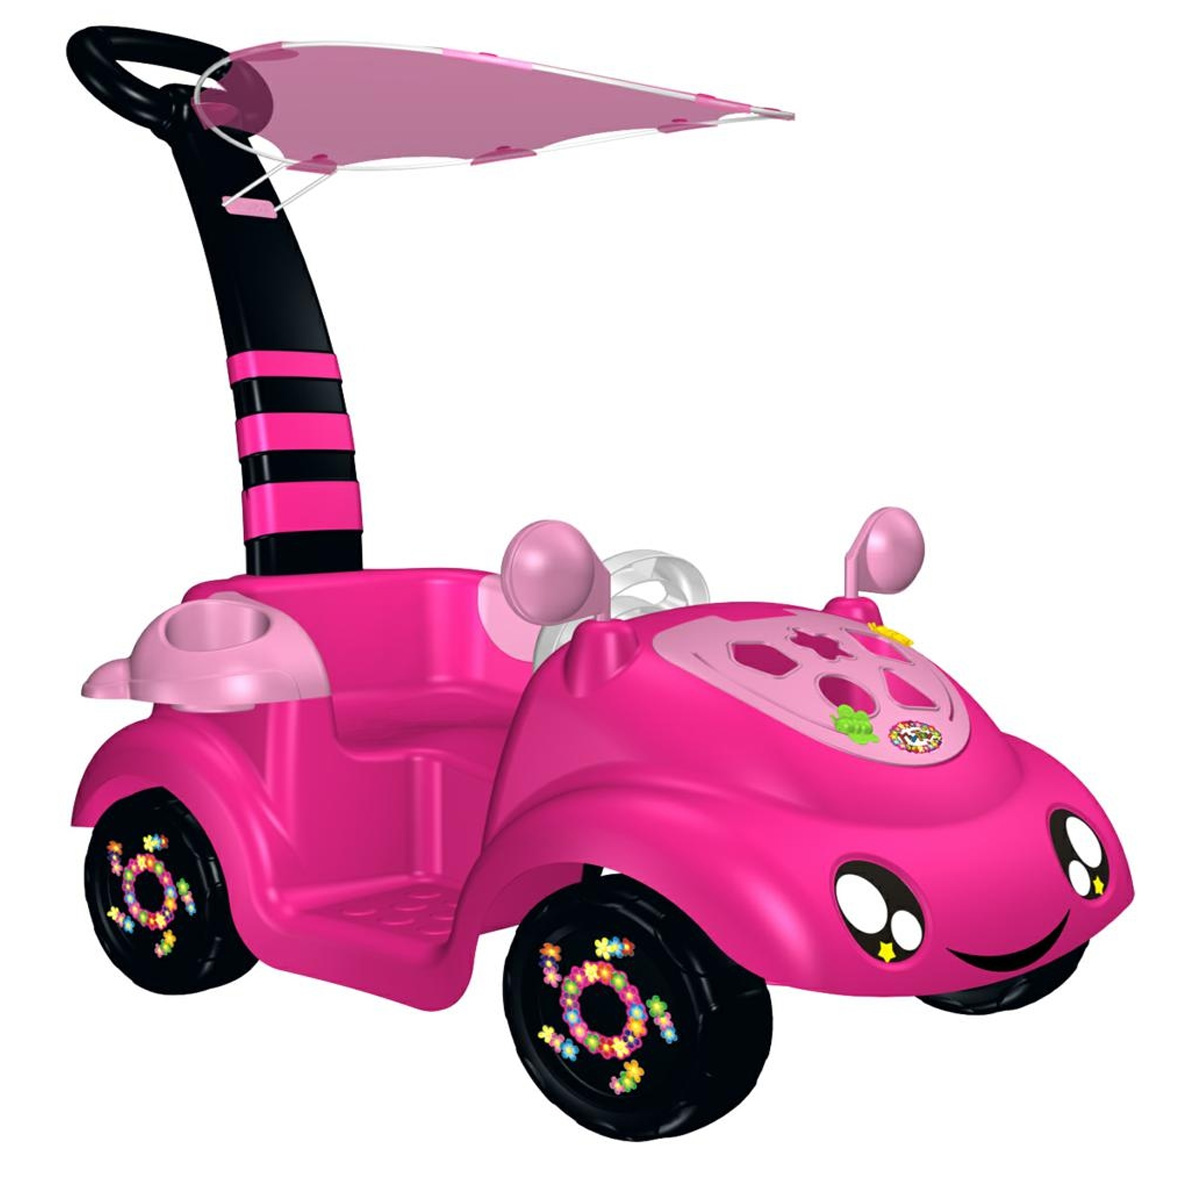 MONTABLE CON SUJETADOR MY TOY MINI MOVIL ROSA